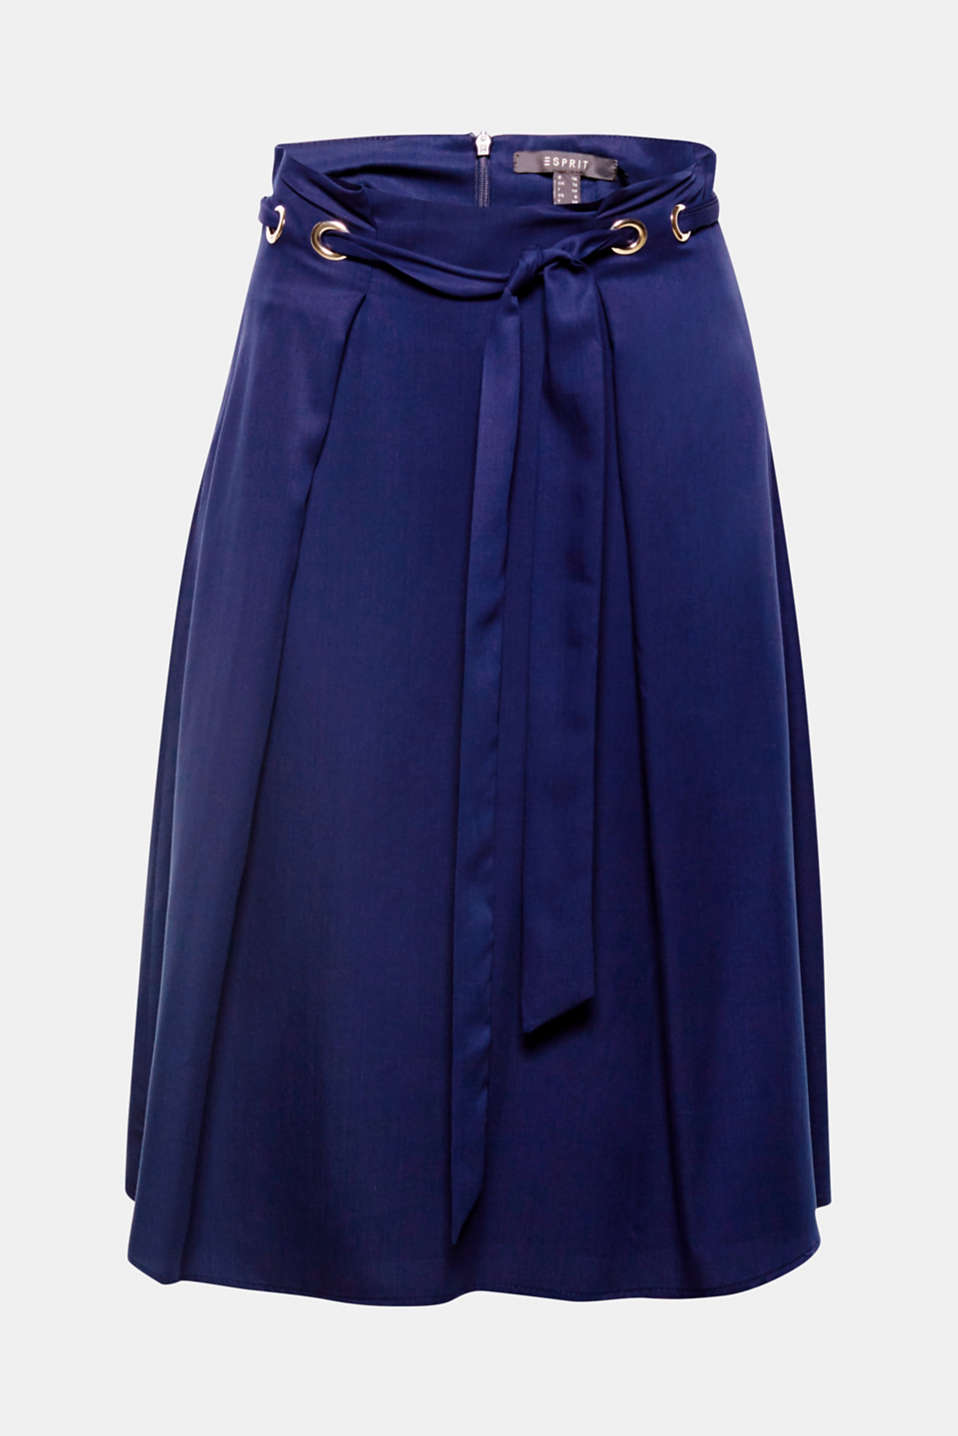 Accentuated waist: Large metal eyelets and a tie-around belt accentuate the fashionable paper bag waistband of this swirling midi skirt!